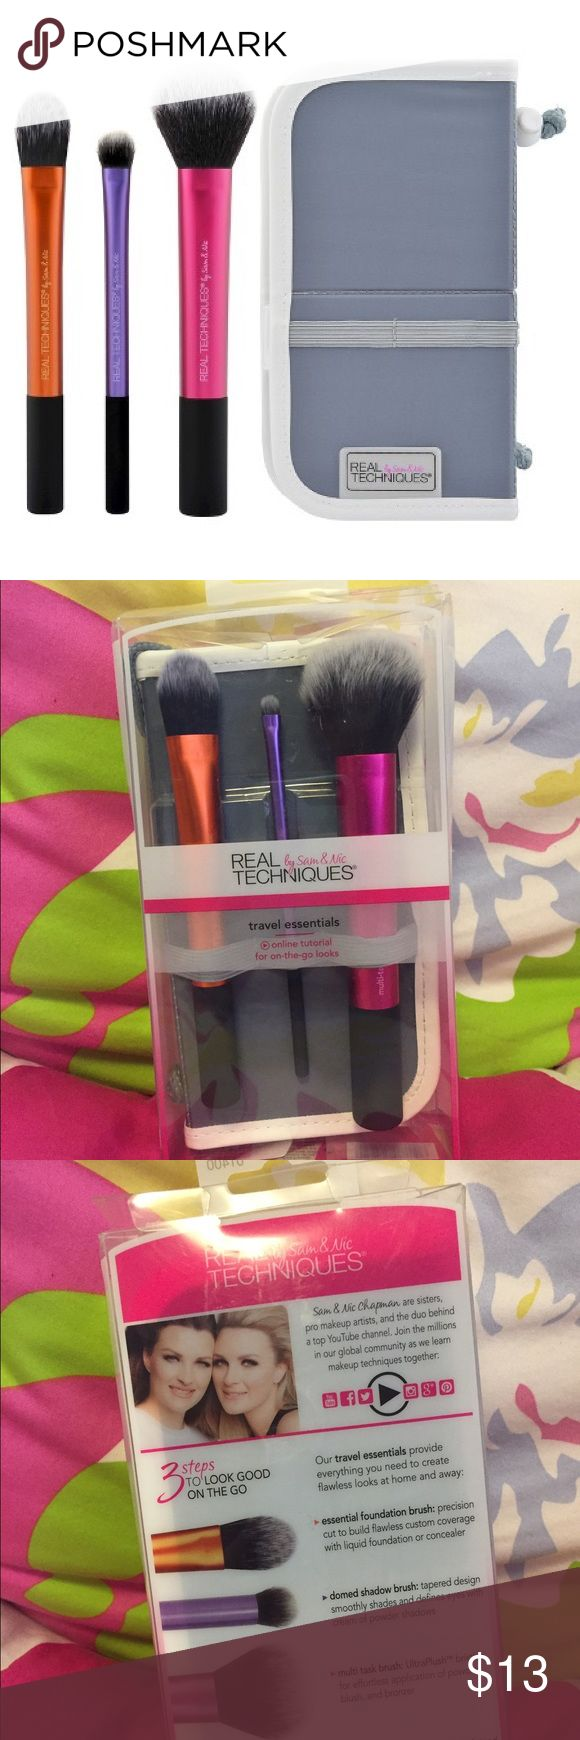 Real Techniques Travel Essentials Set NWOT Designed with pro makeup artists Sam + Nic Chapman, Real Techniques brushes combine high-tech materials with innovative design to make creating a pixel-perfect look easier than ever. Brand new! real techniques Makeup Brushes & Tools